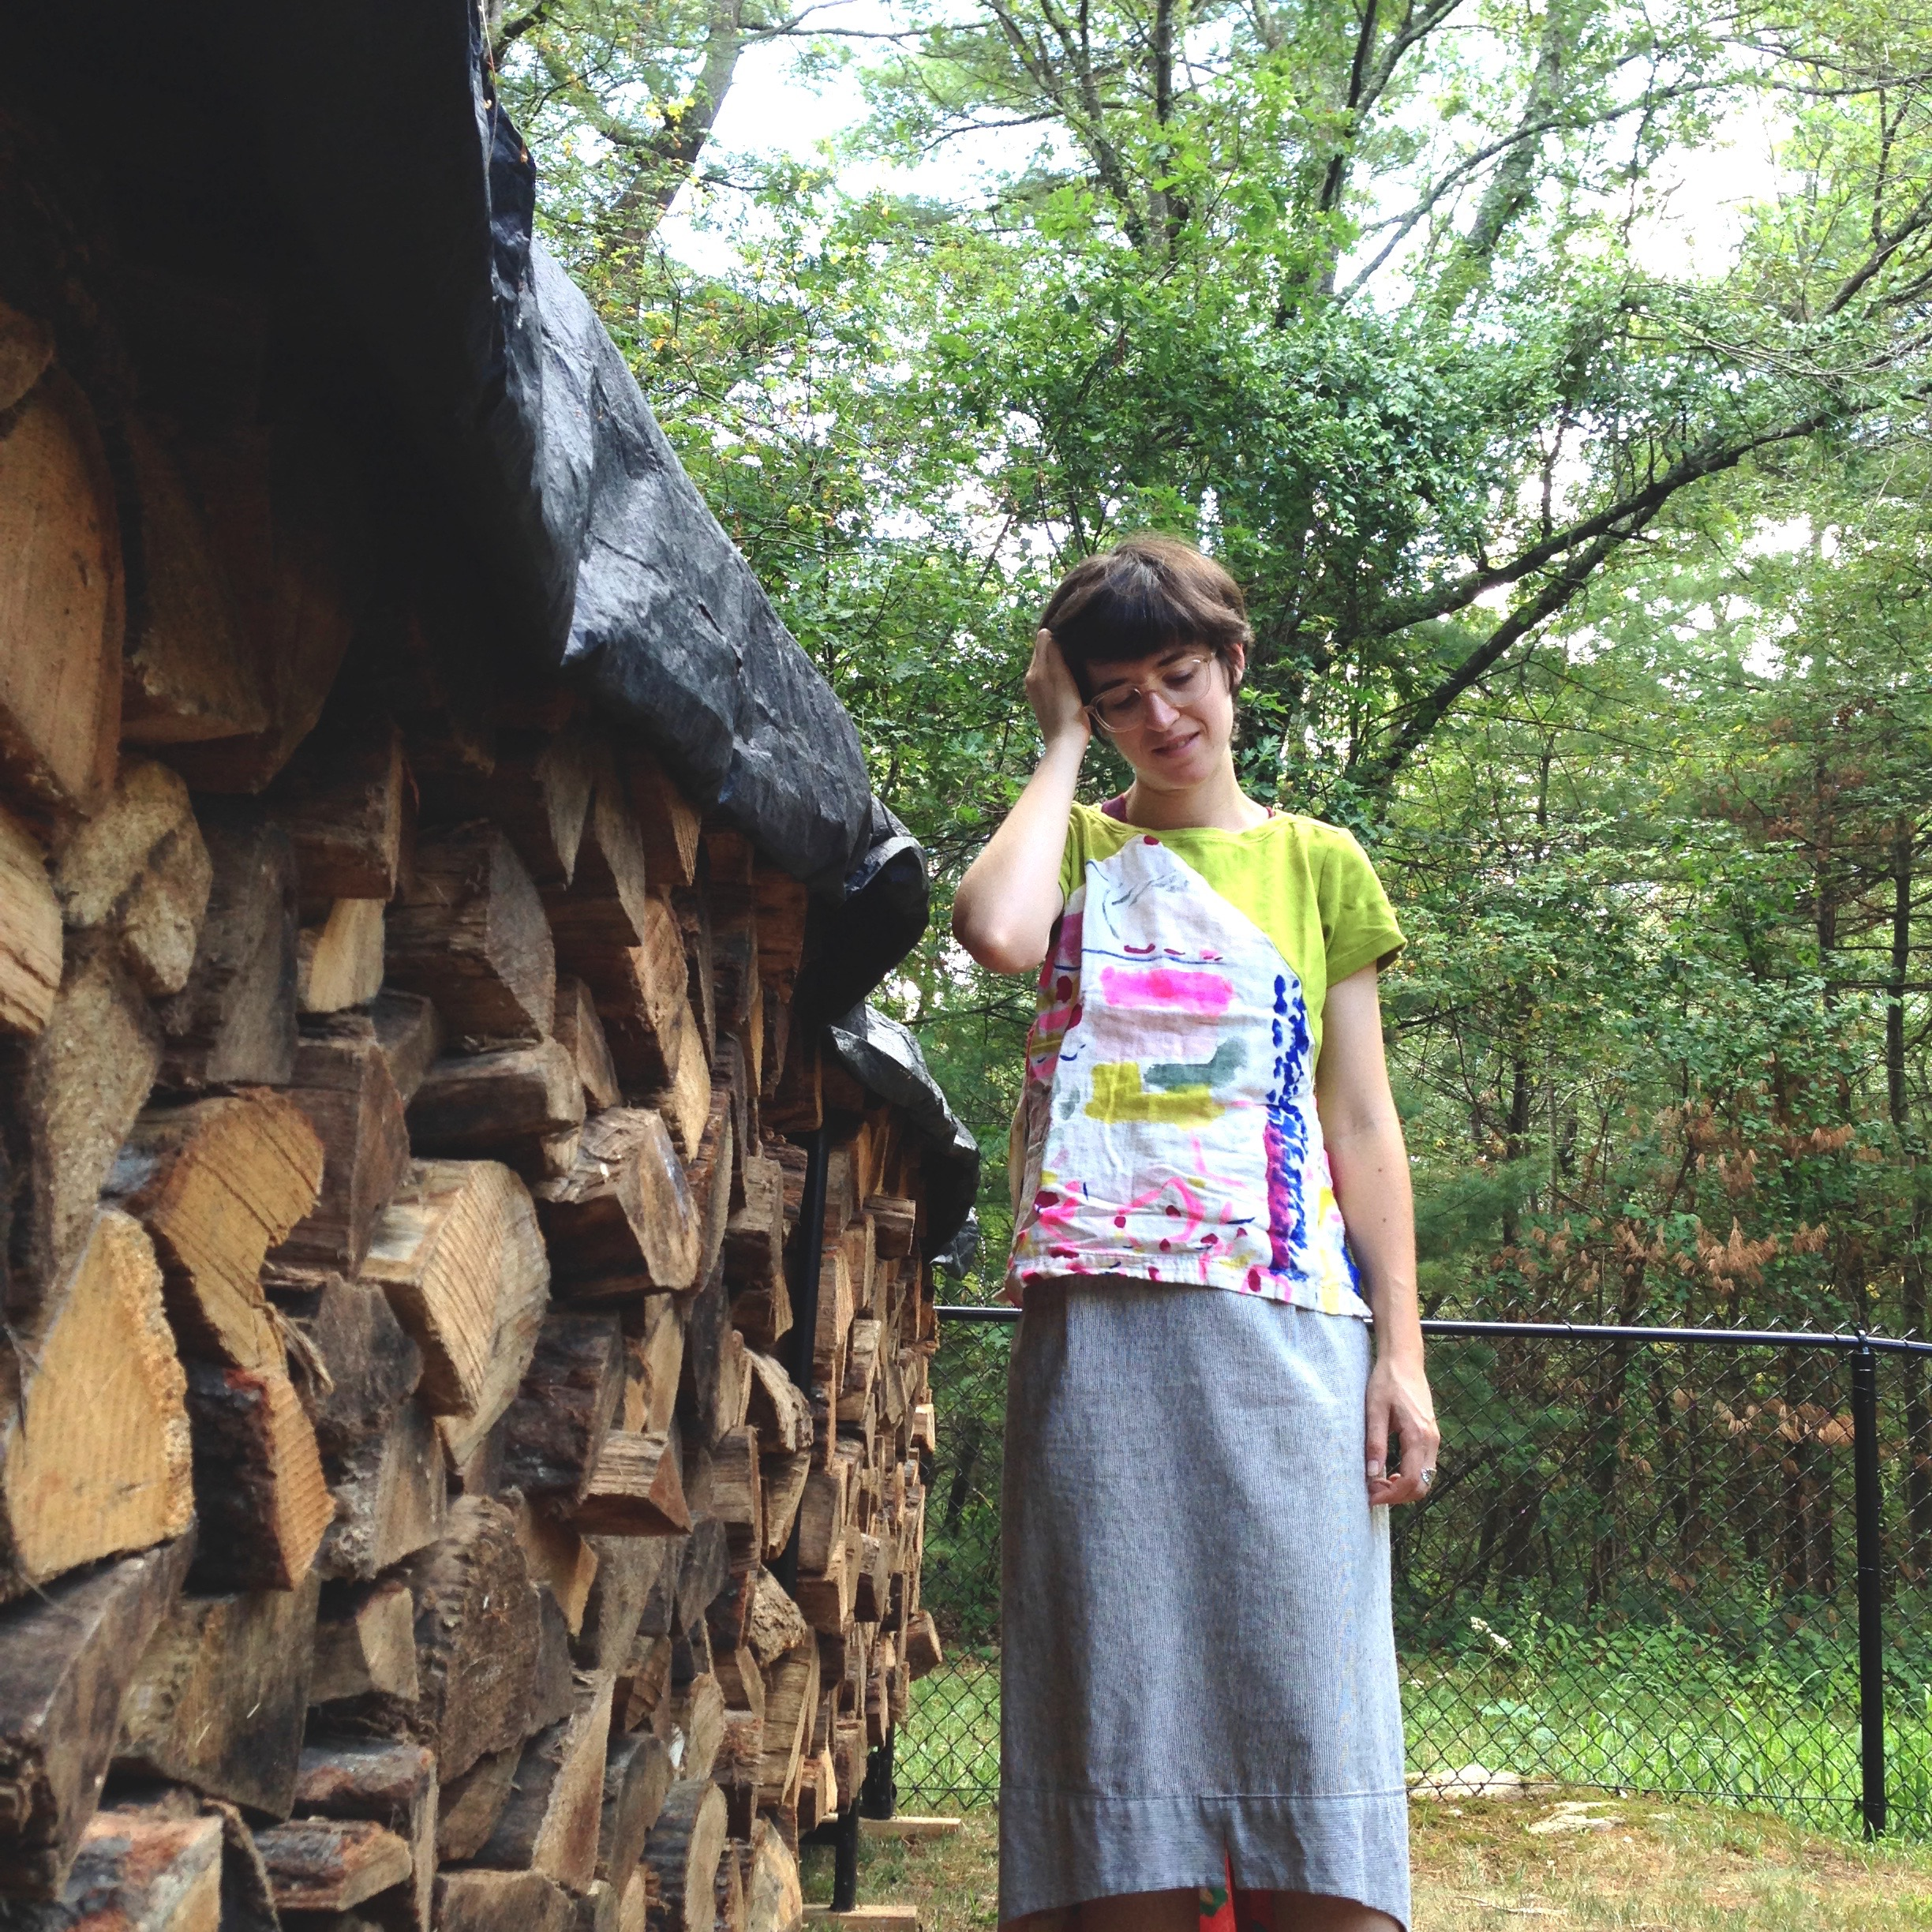 We got a cord of firewood yesterday and I like taking pictures with it! Looking forward to a super toasty winter ;)